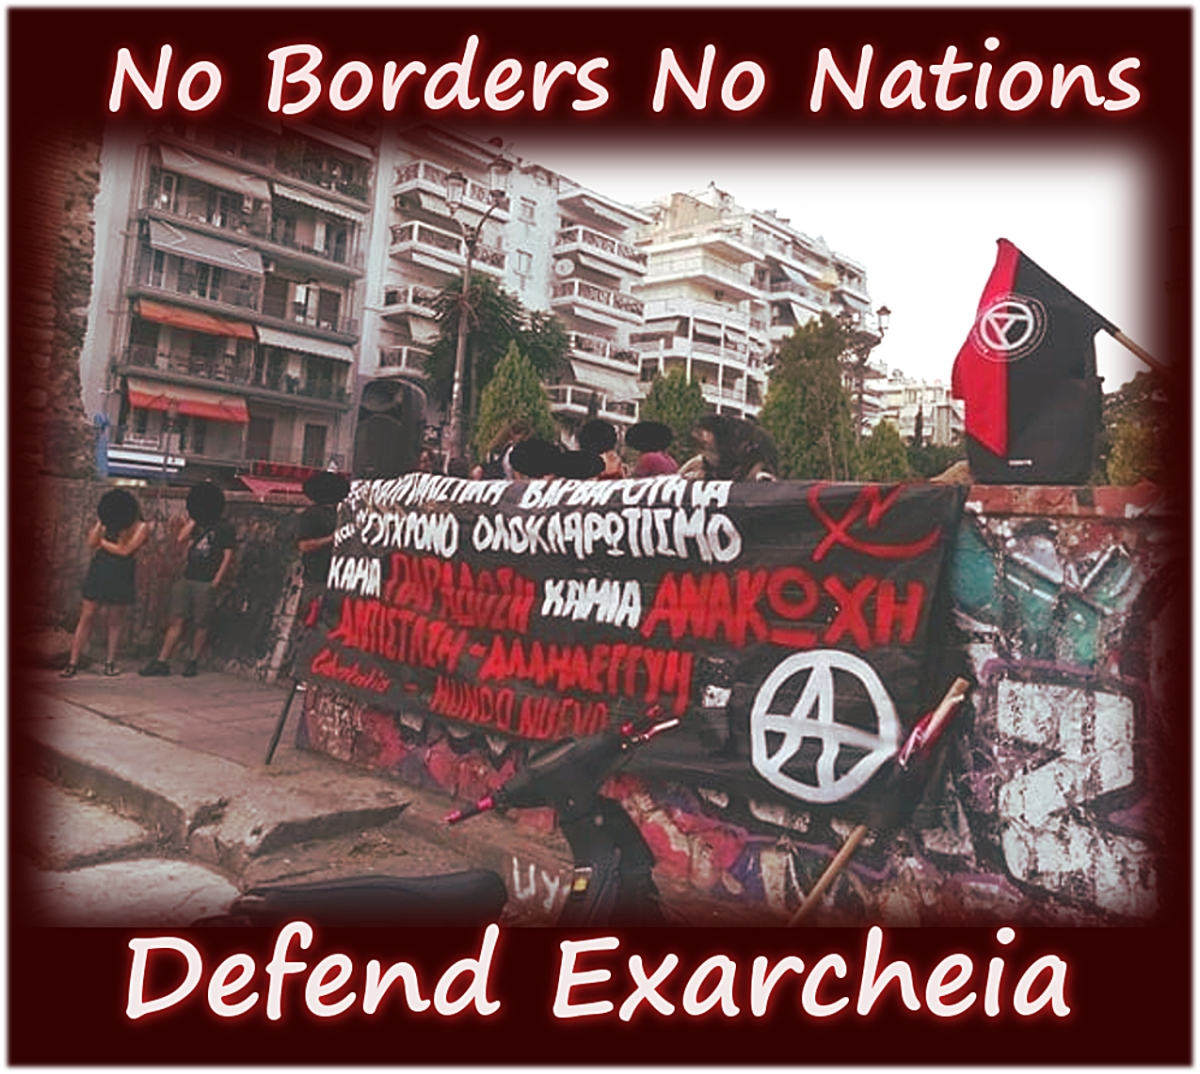 Defend Exarcheia .. All out! Sept 14: Against State Oppression!